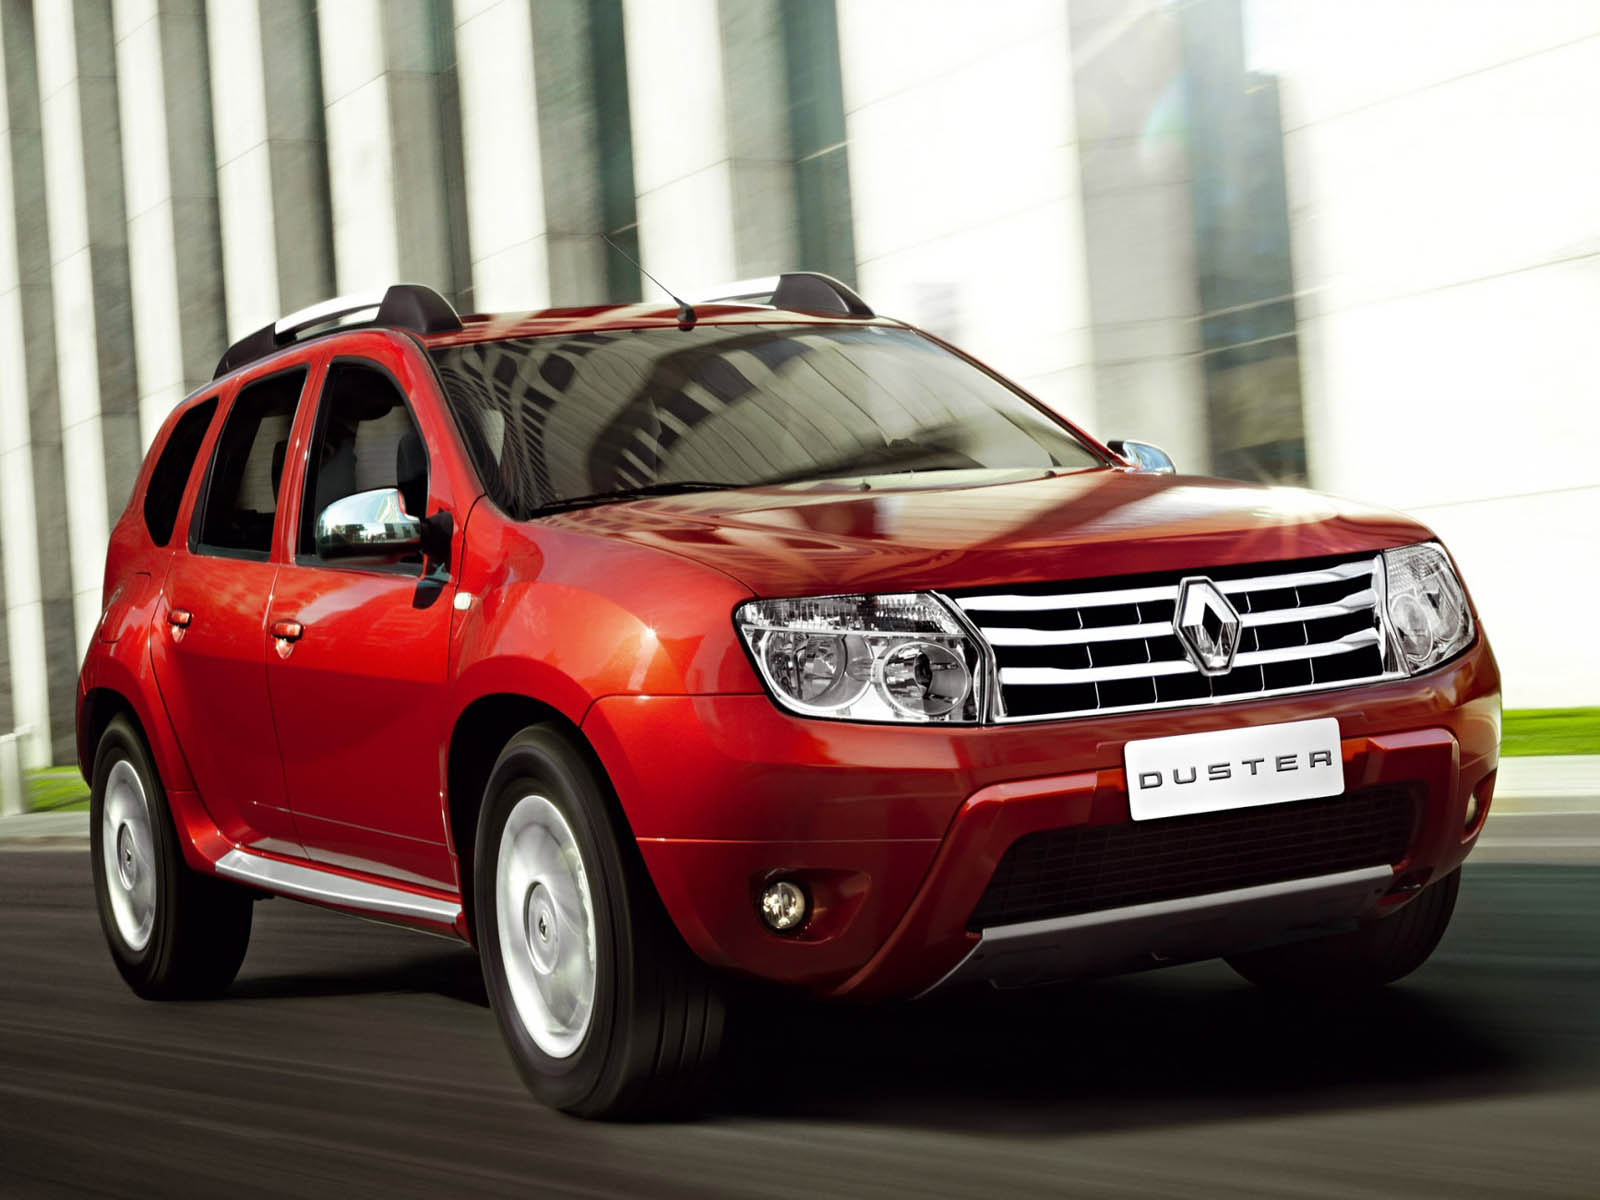 Renault duster car best wallpaper renault duster car voltagebd Image collections